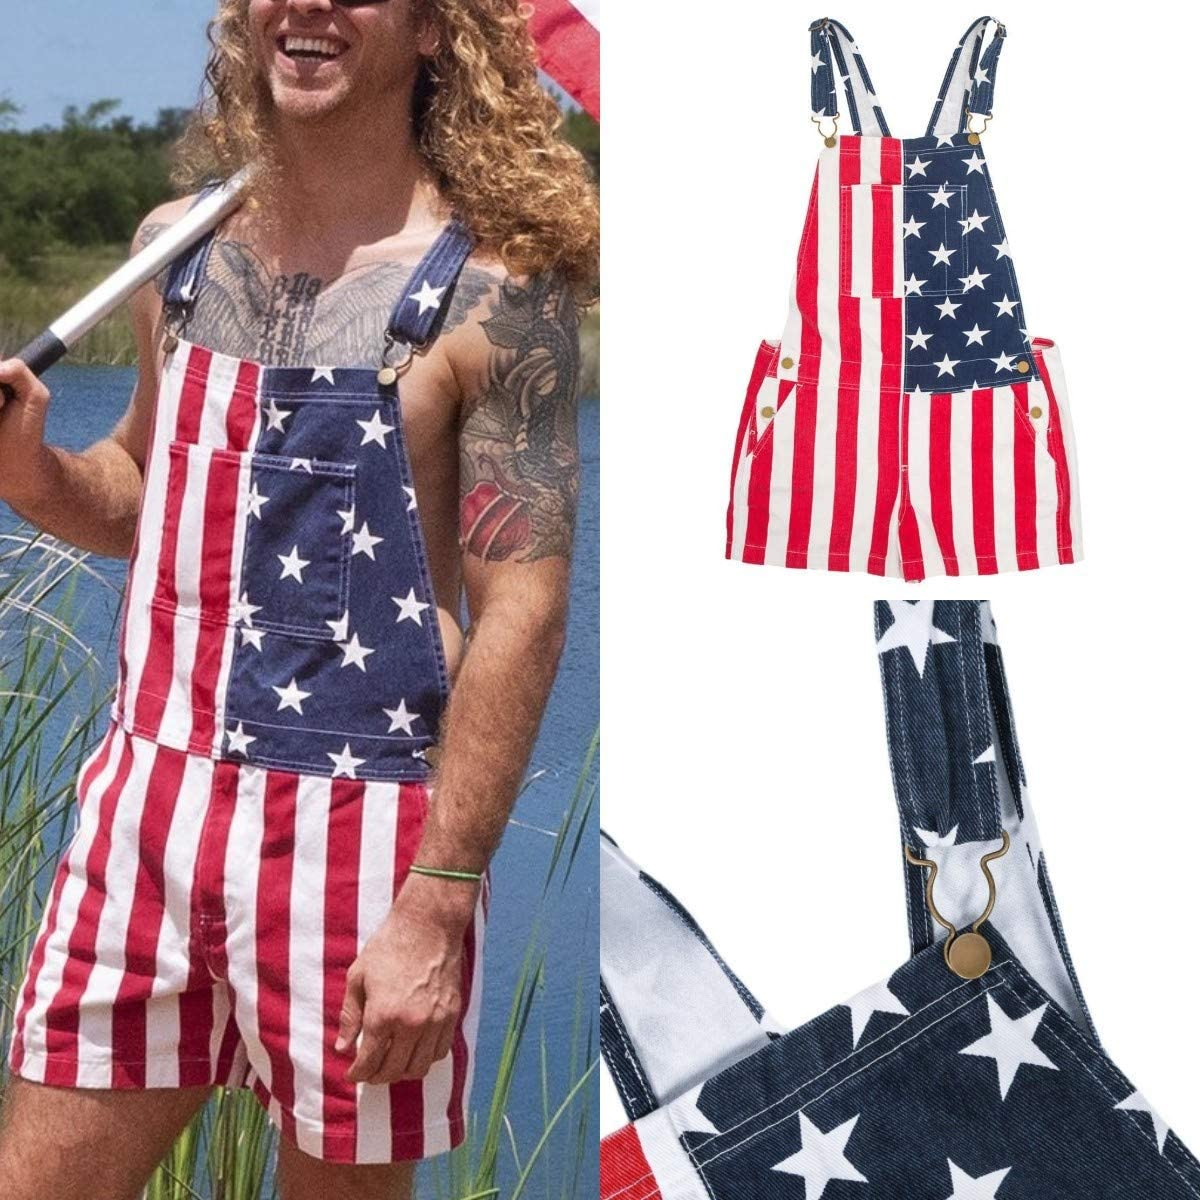 Baitengxin American Flag Overalls Adjustable Strap Jean Shorts 4Th of July Rompers Short Jumpsuit with Pocket,L